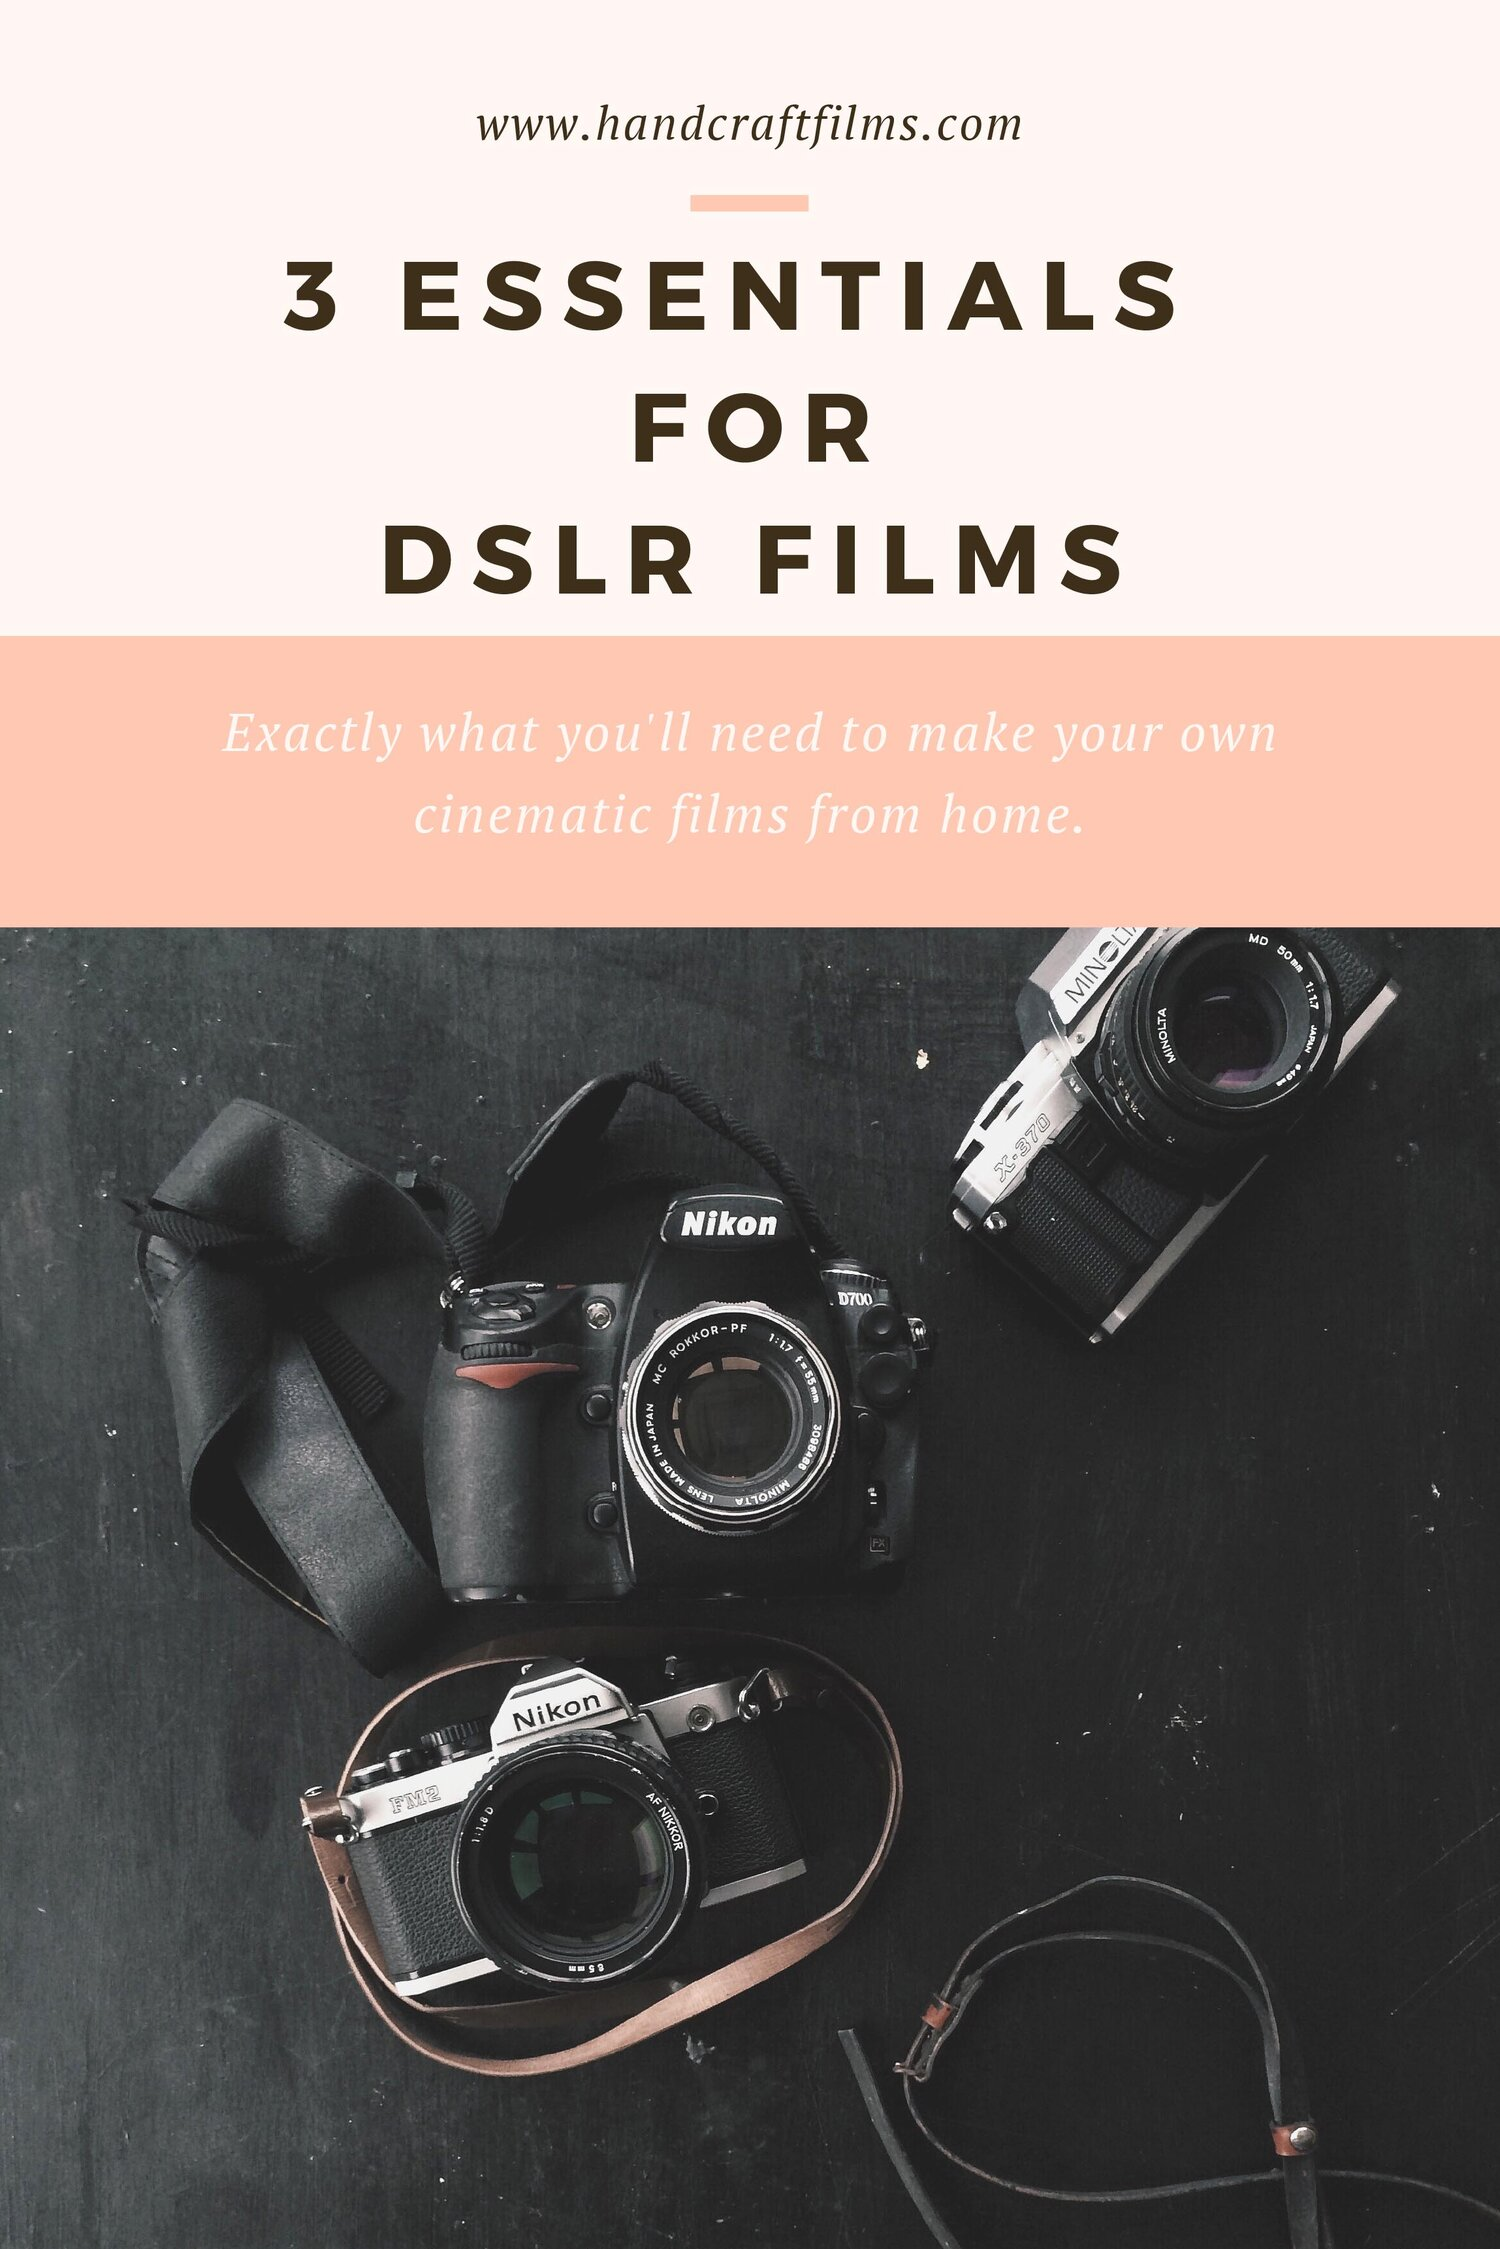 3 essentials for dslr films